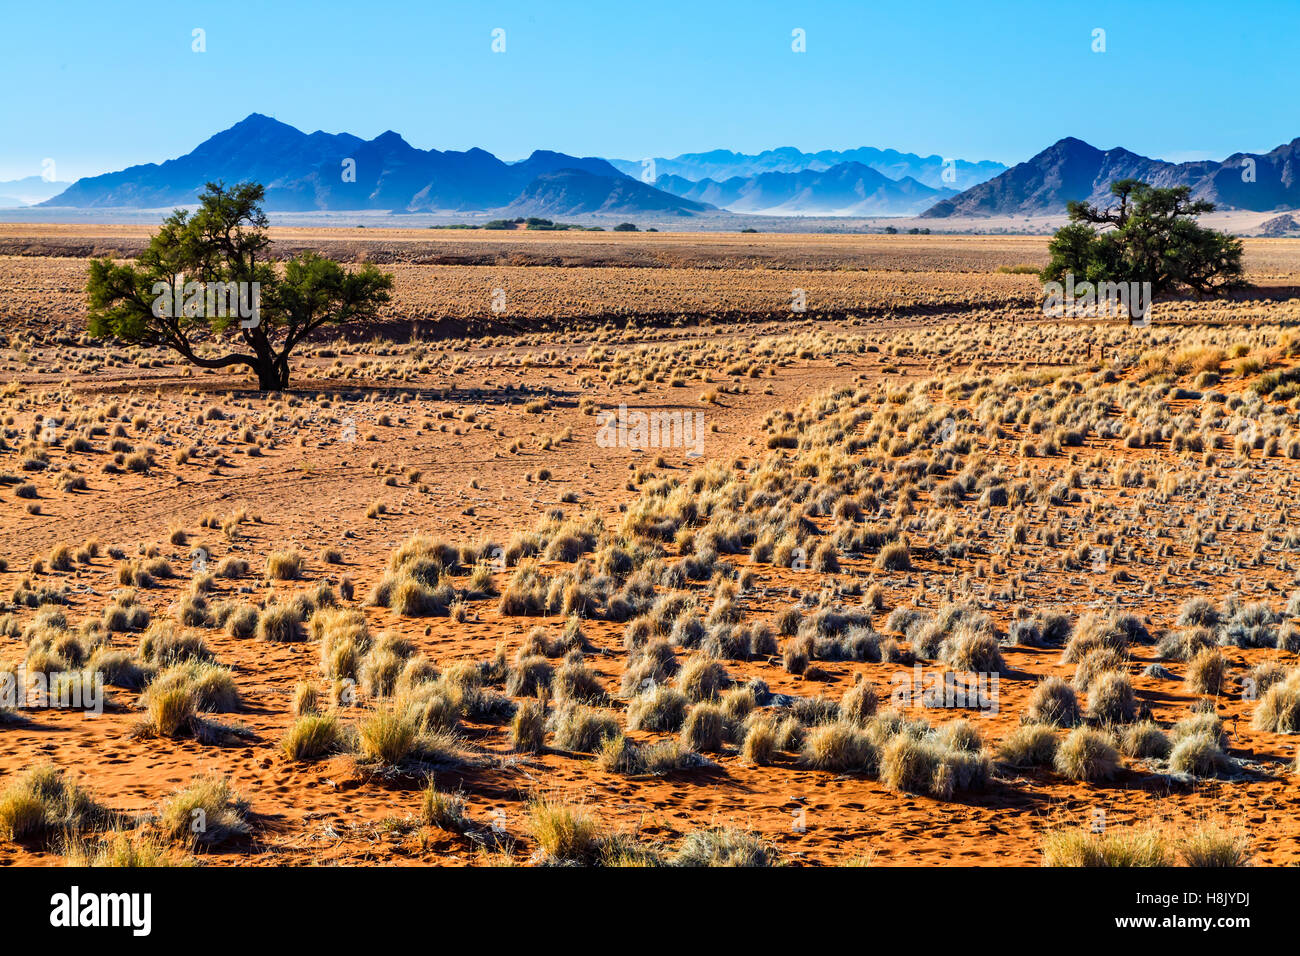 Sossousvlei landscape with distant blue mountains in an arid environment - Stock Image